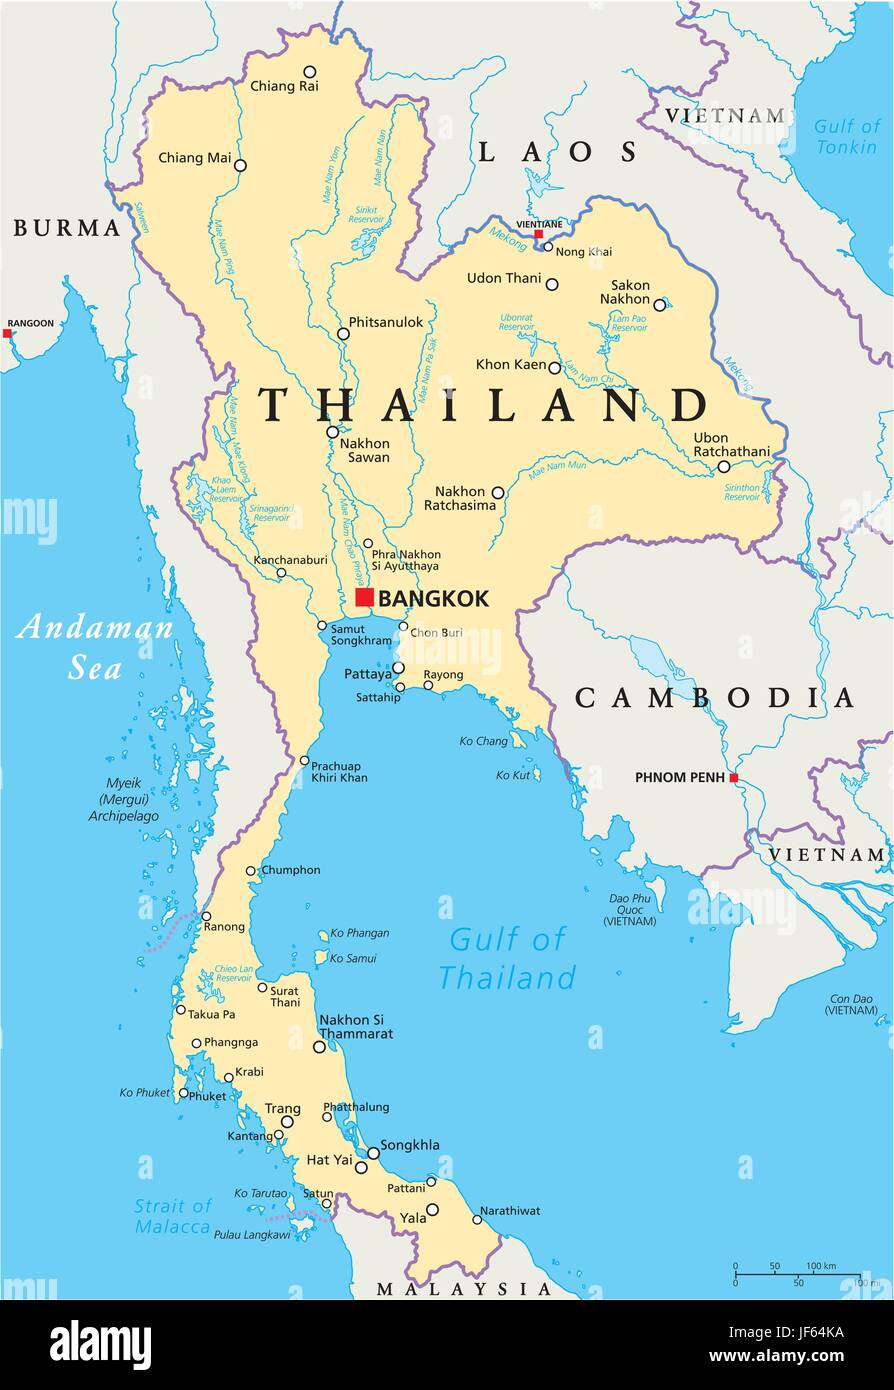 thailand, bangkok, map, atlas, map of the world, travel, asia